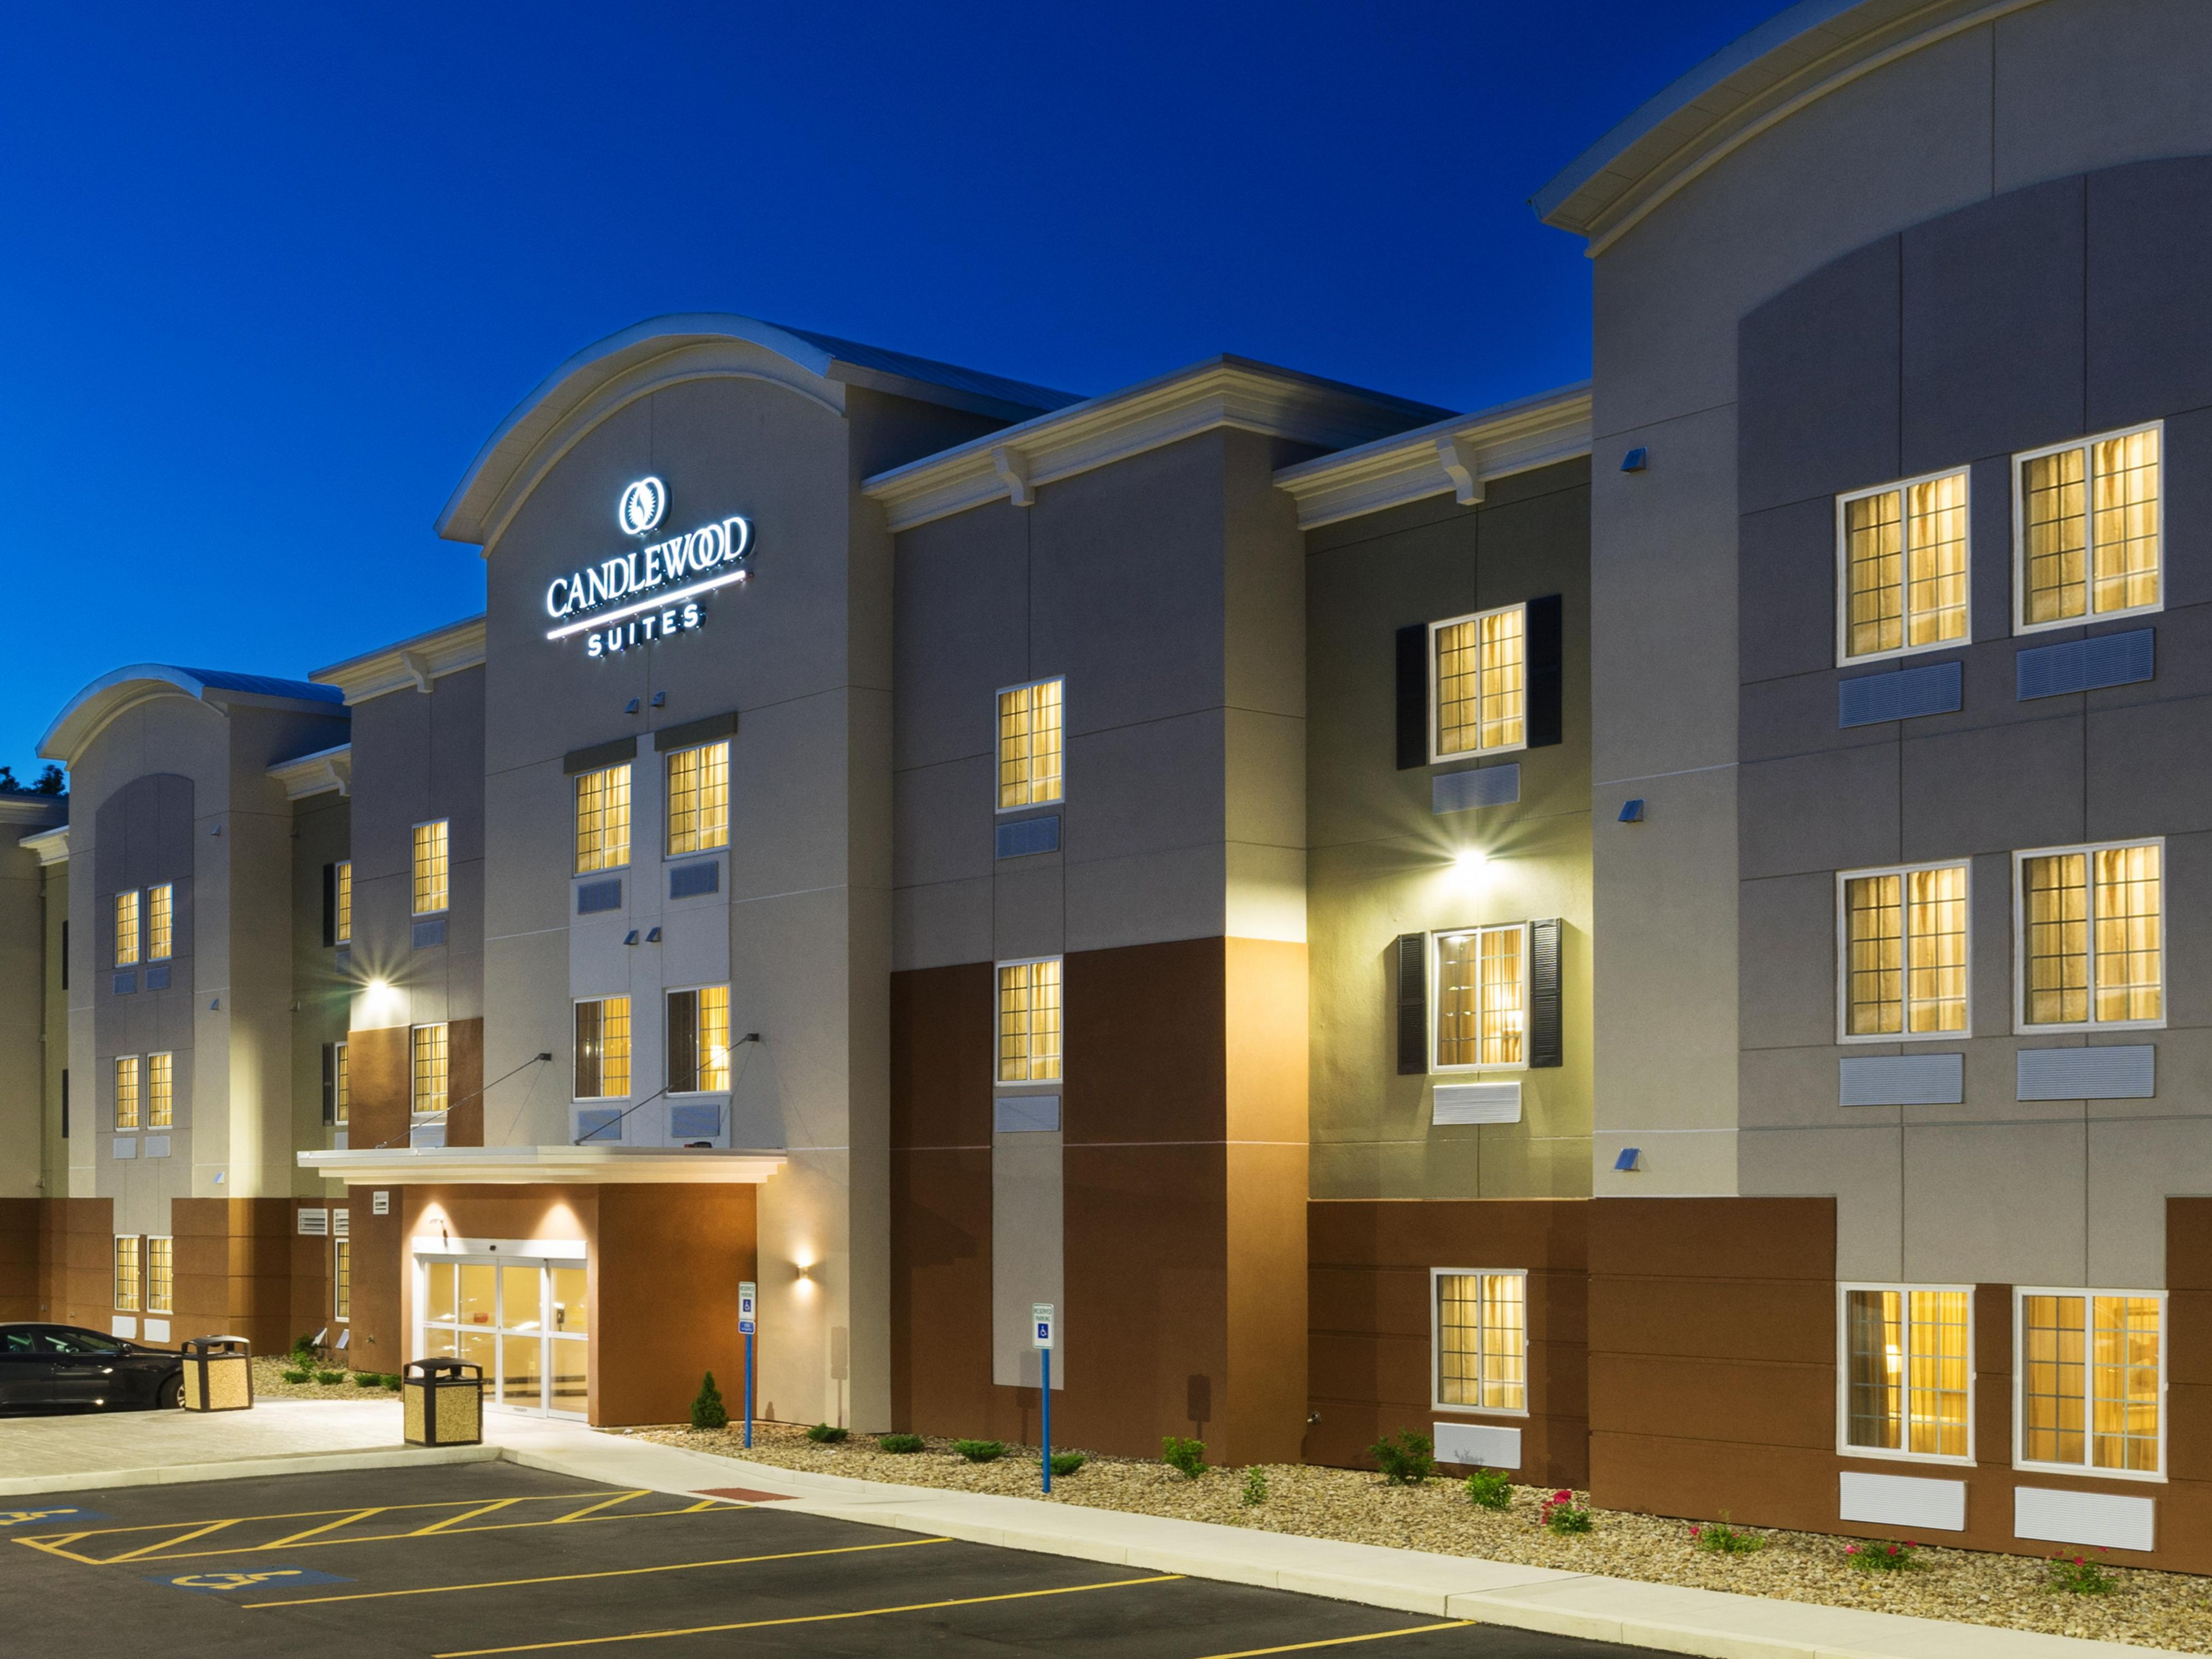 Mercer Hotels Candlewood Suites Grove City Outlet Center Extended Stay Hotel In Pennsylvania